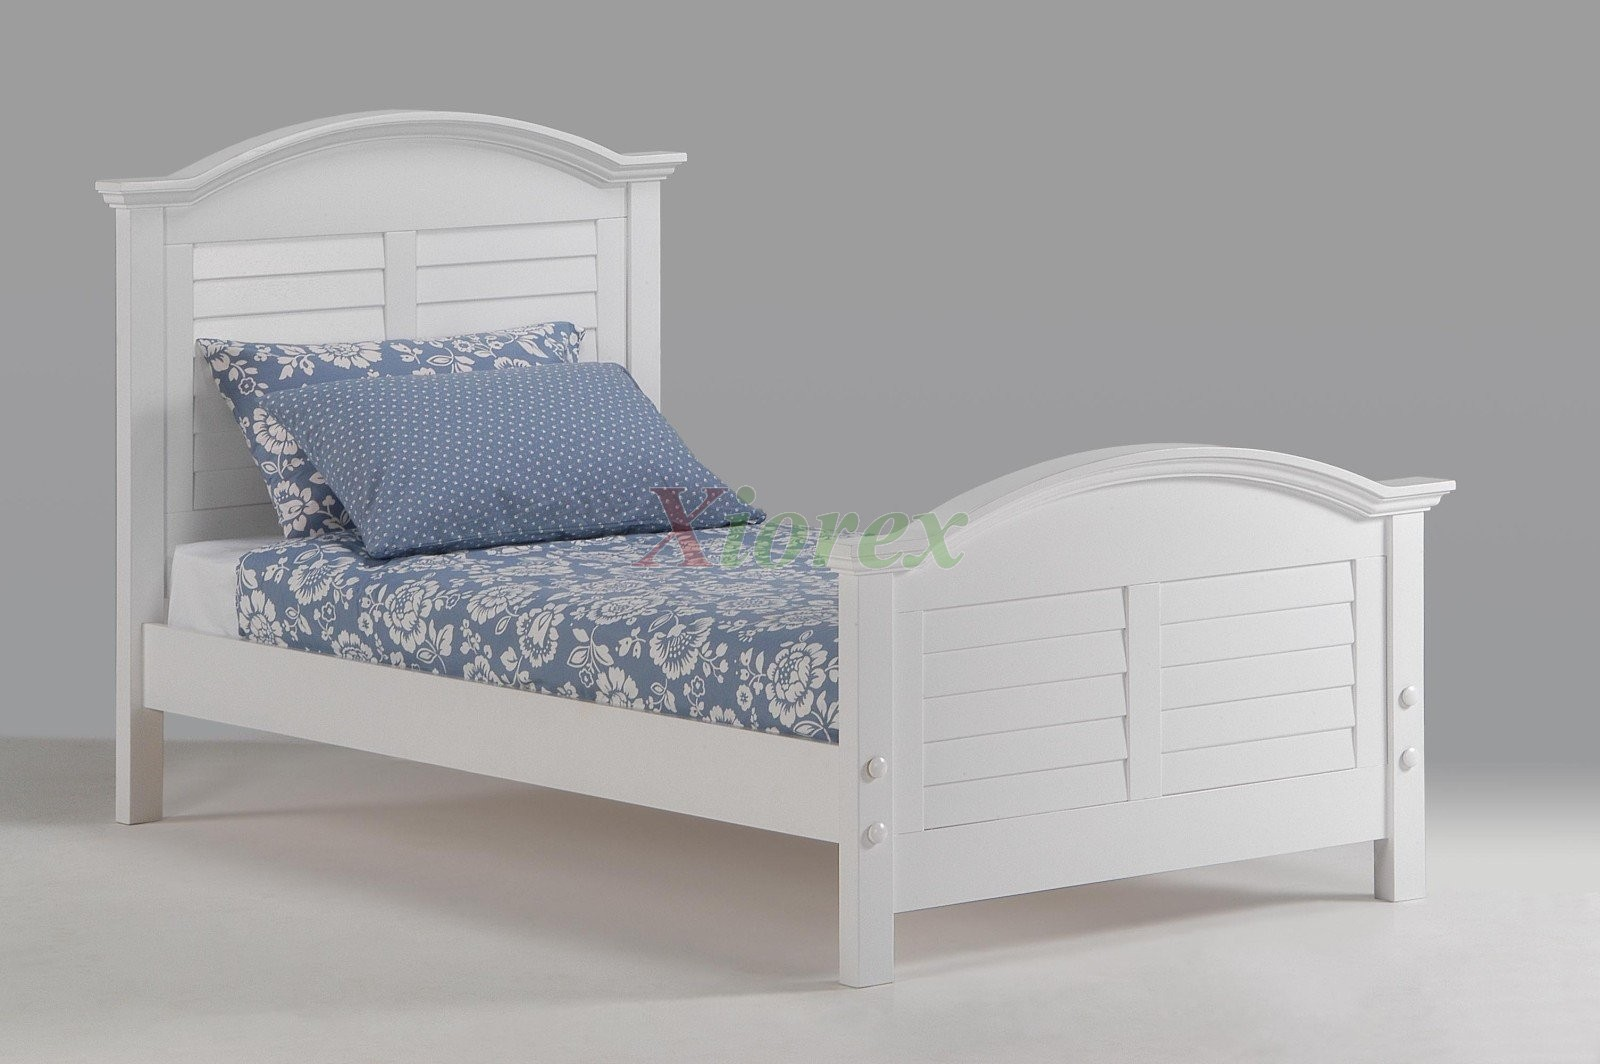 Picture of: On Style Today 2020 11 09 Captivating Bedrooms Bunk Beds Girls Here